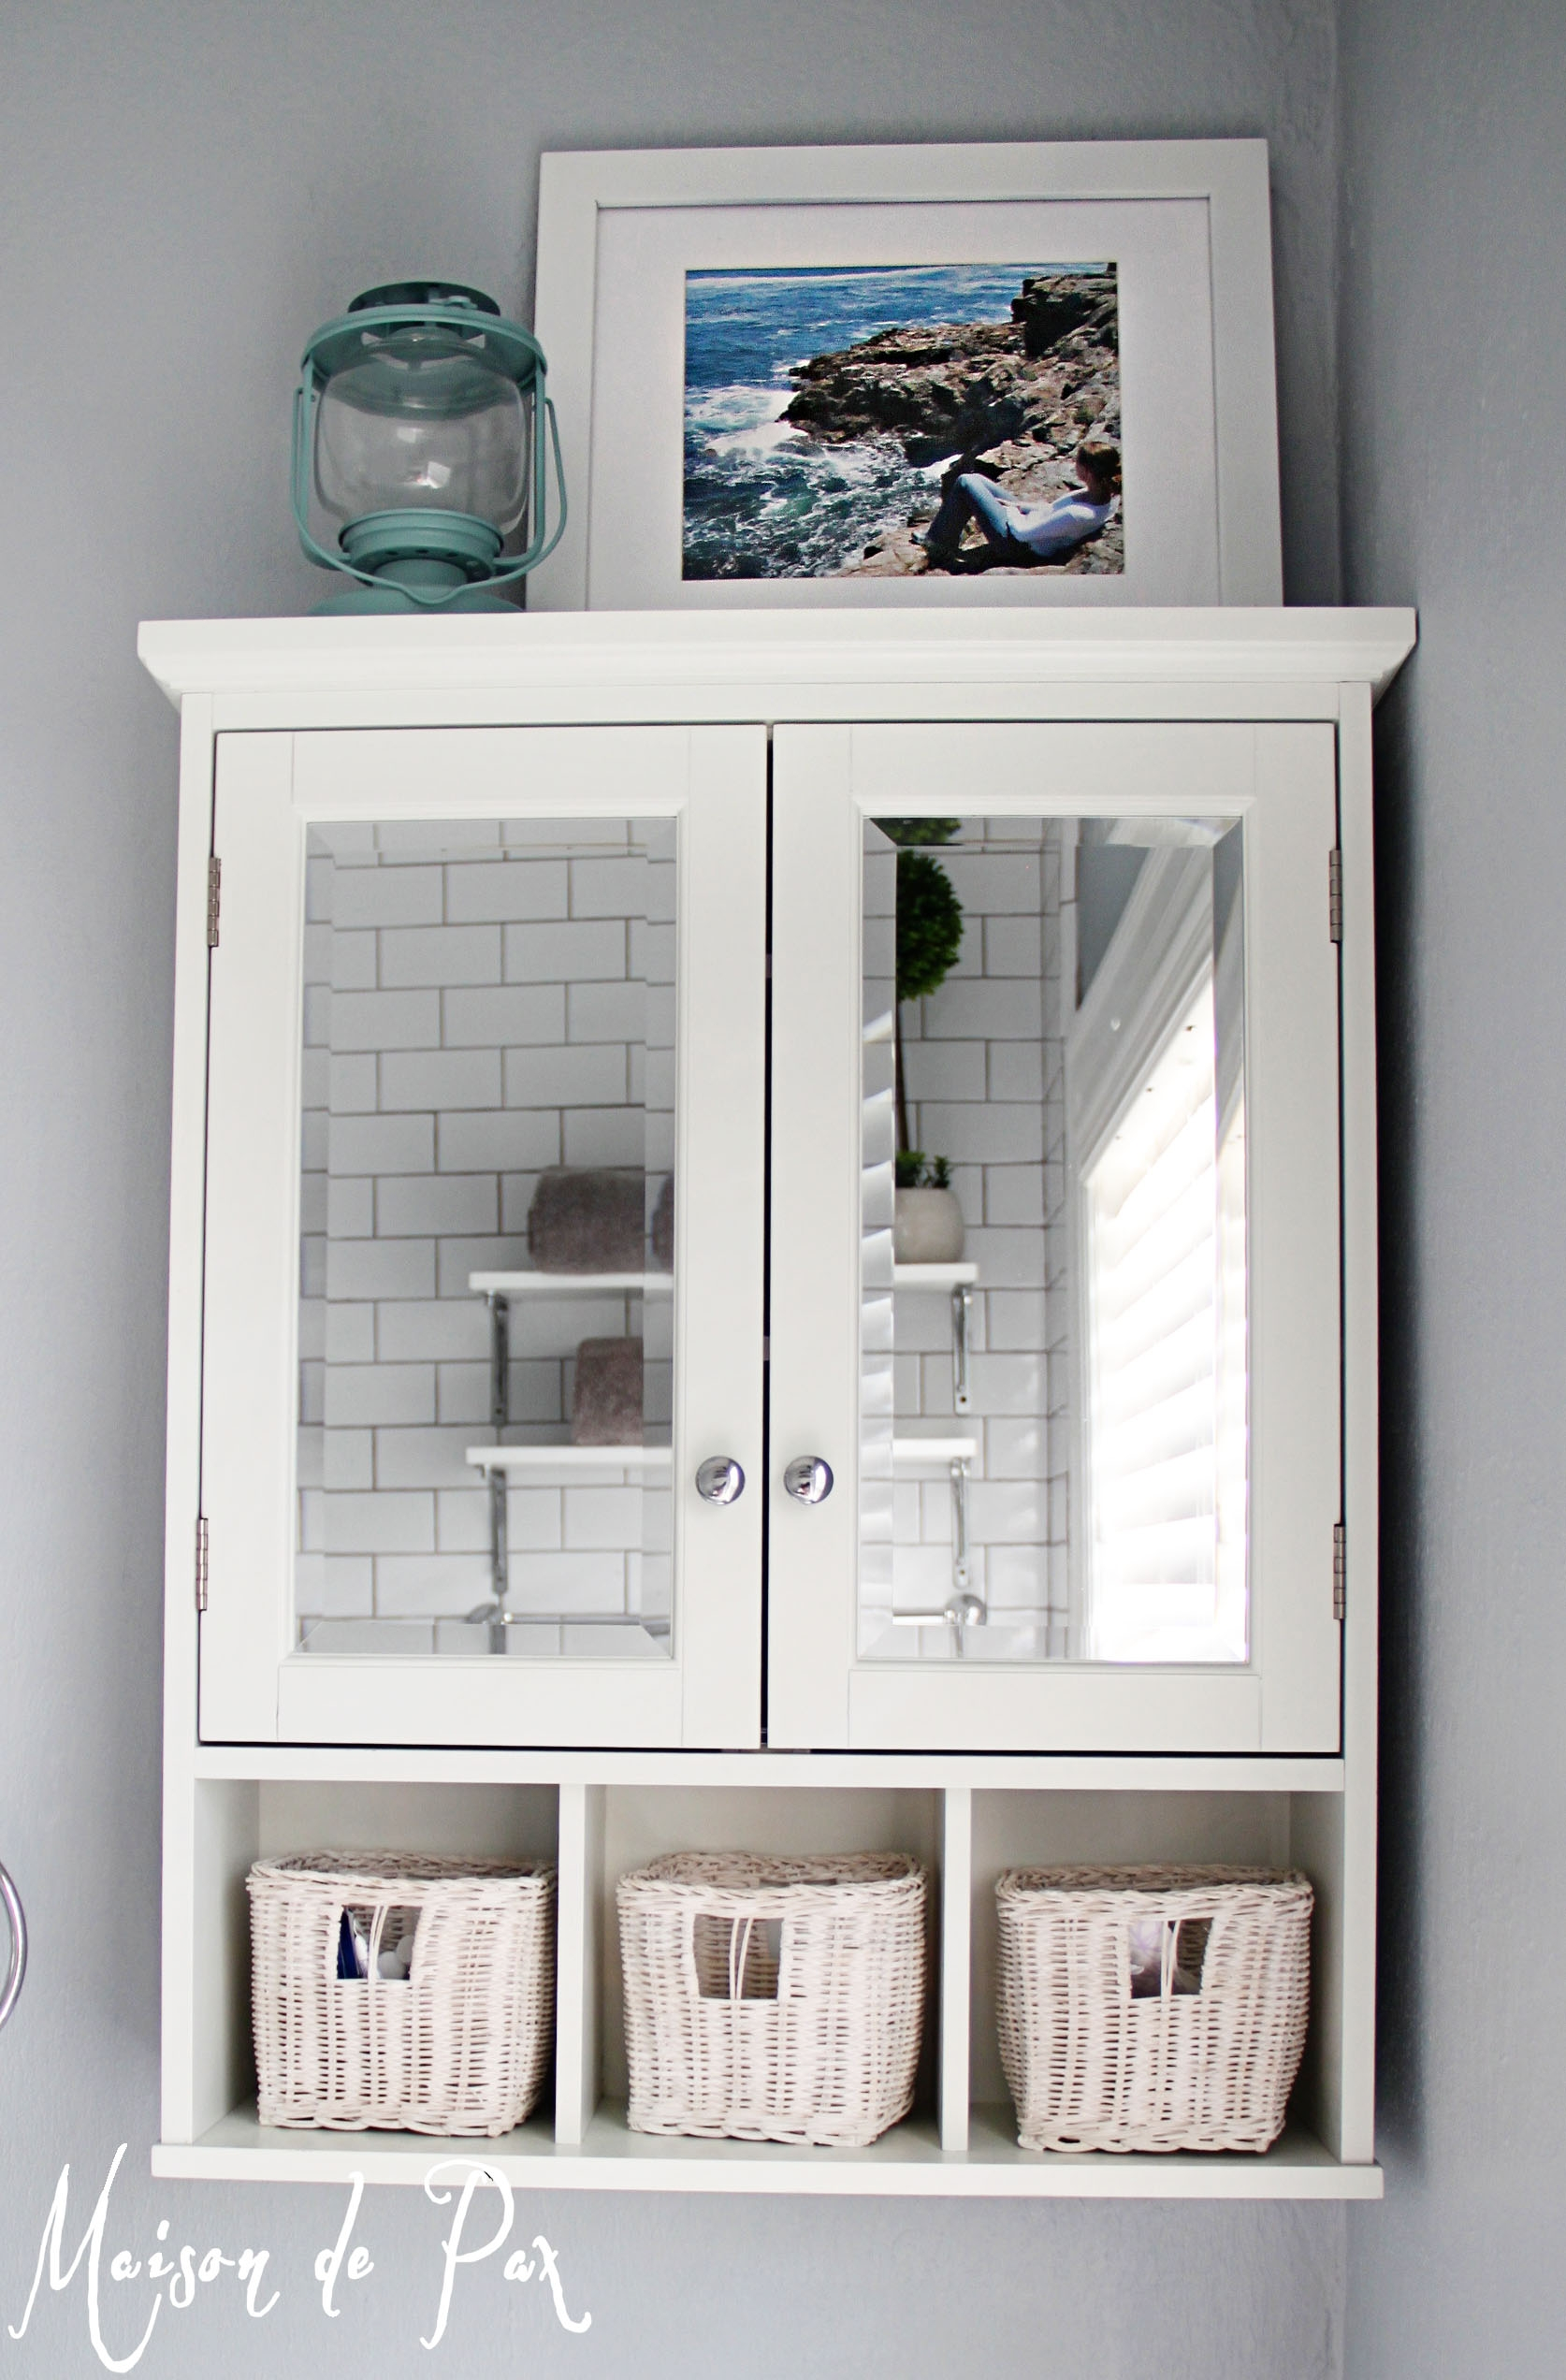 White Two Door Bathroom Wall Cabinet With Shelf & Mirror10 tips for designing a small bathroom toilets bathroom storage